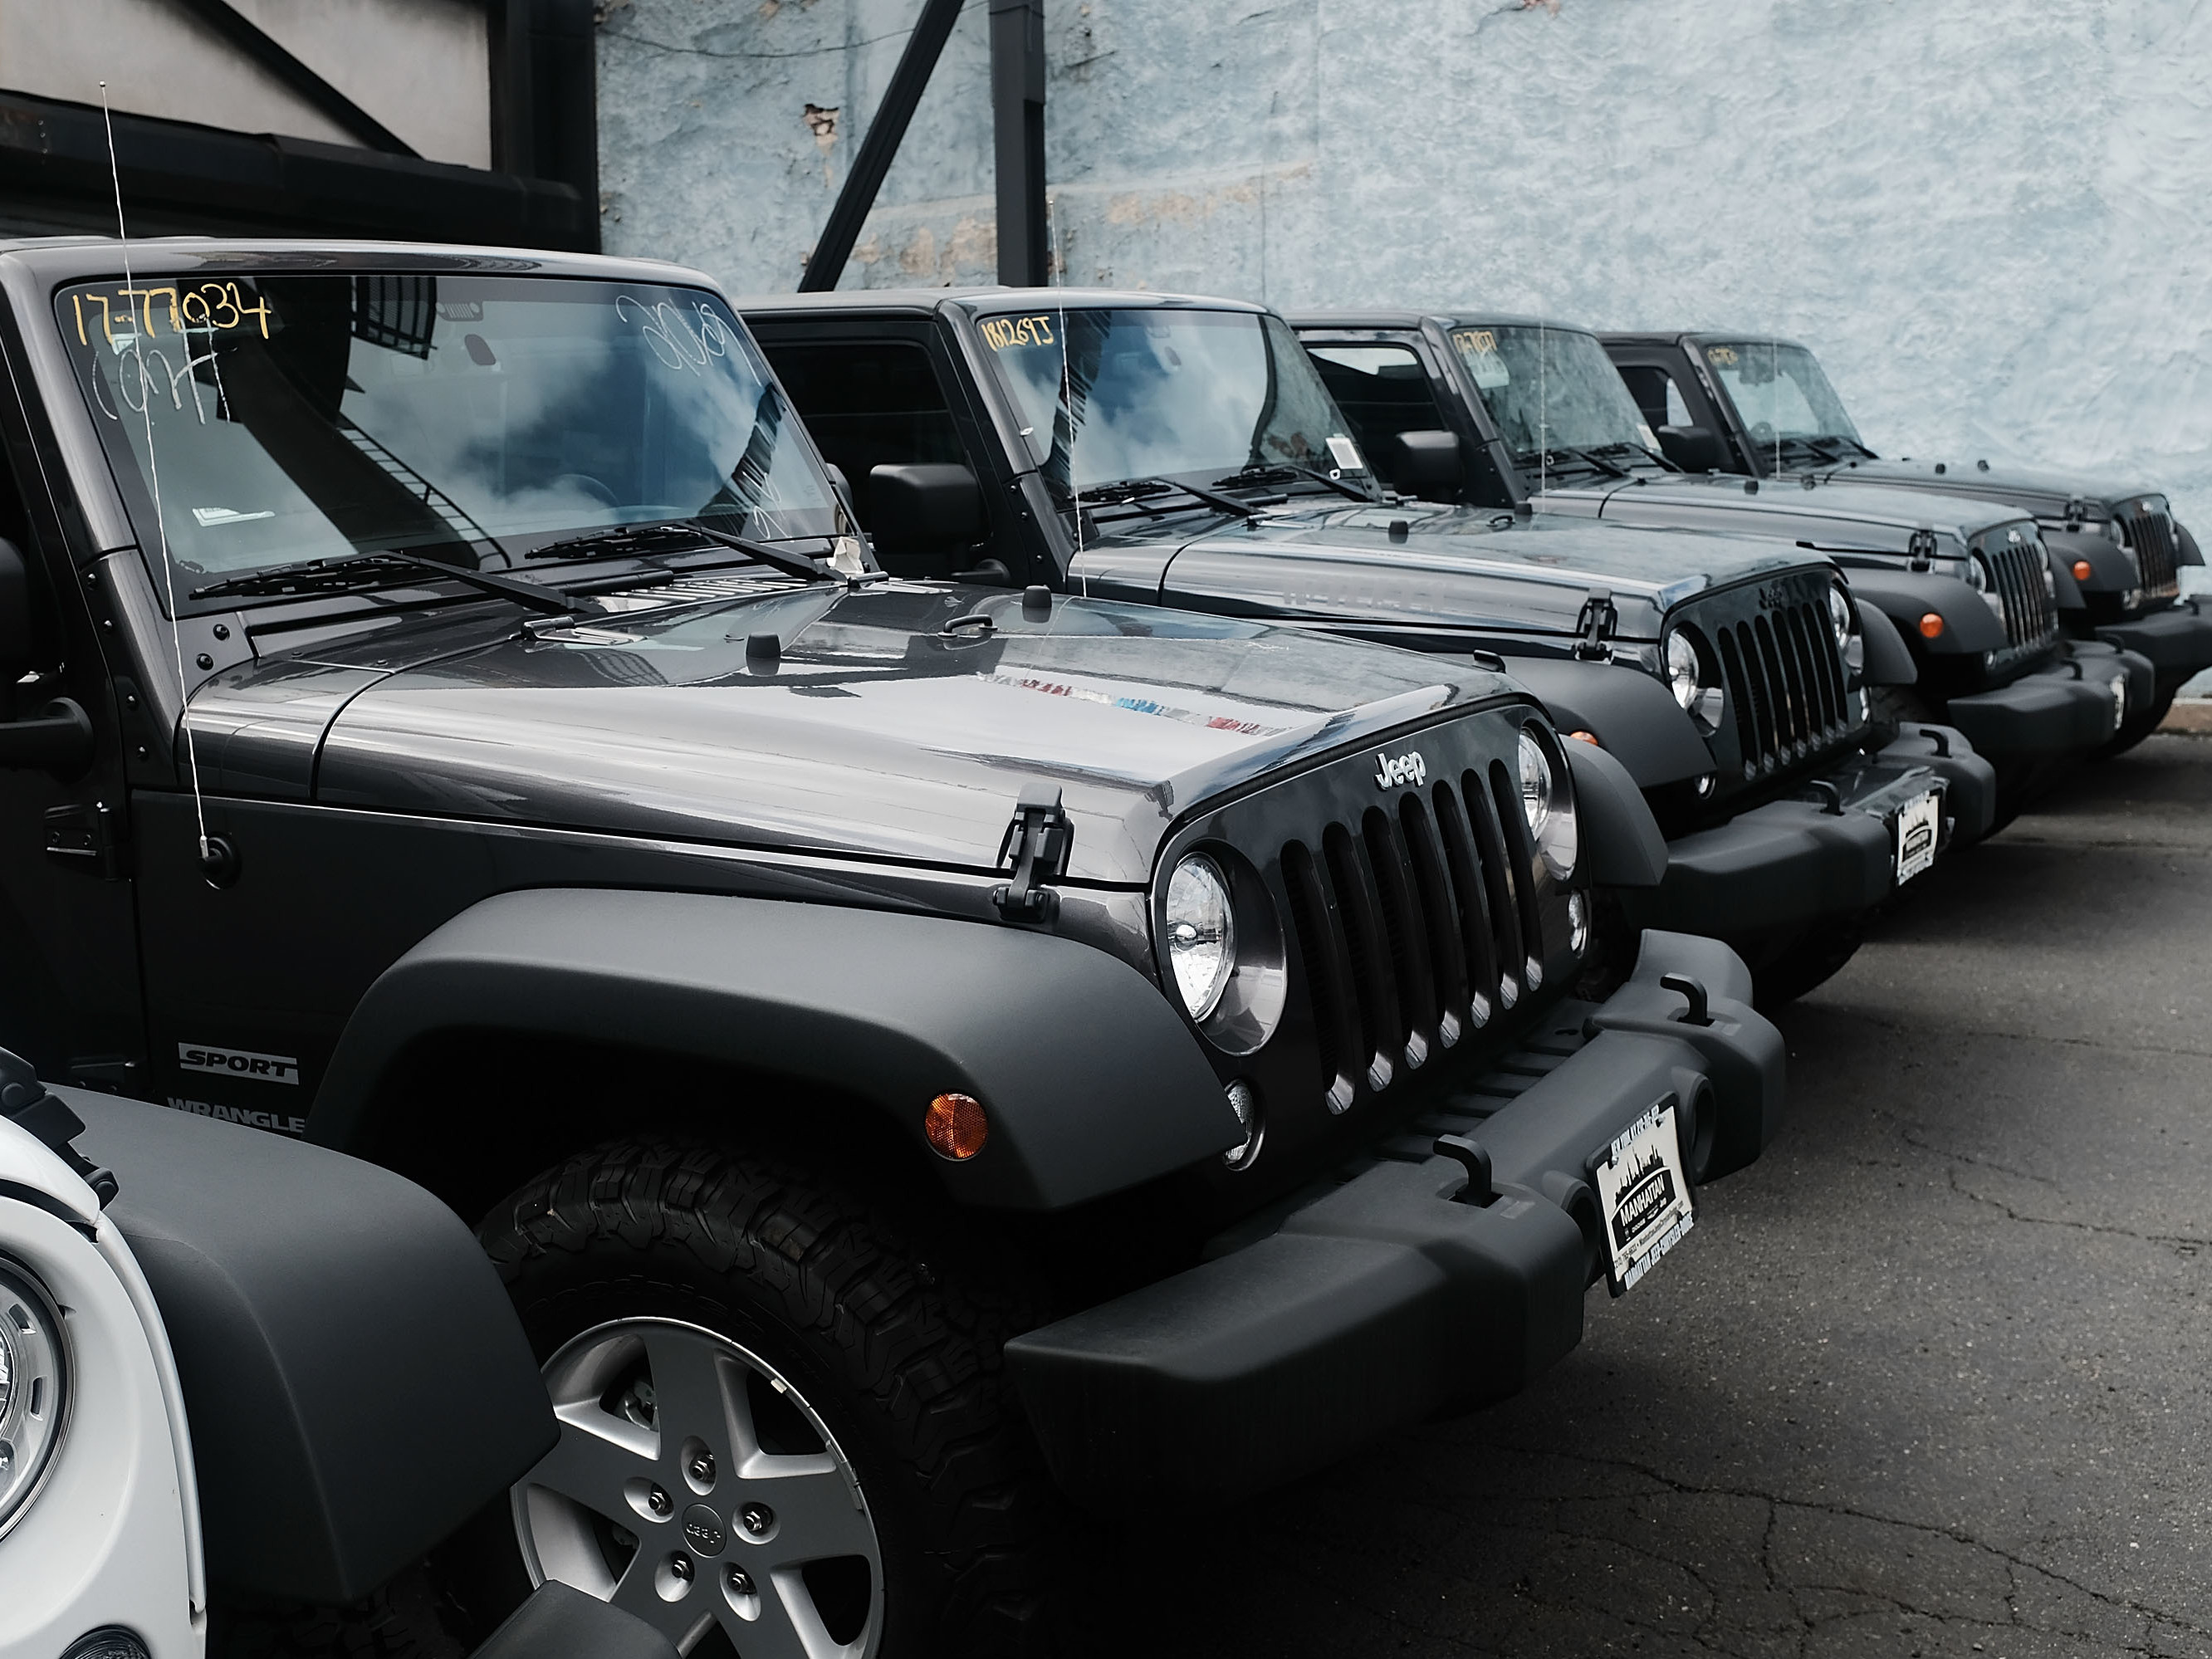 Jeep Wranglers Are Displayed At A Manhattan Fiat Chrysler Dealership The Automaker S Latest Quarterly Earnings Announcement Comes Time Of Deep